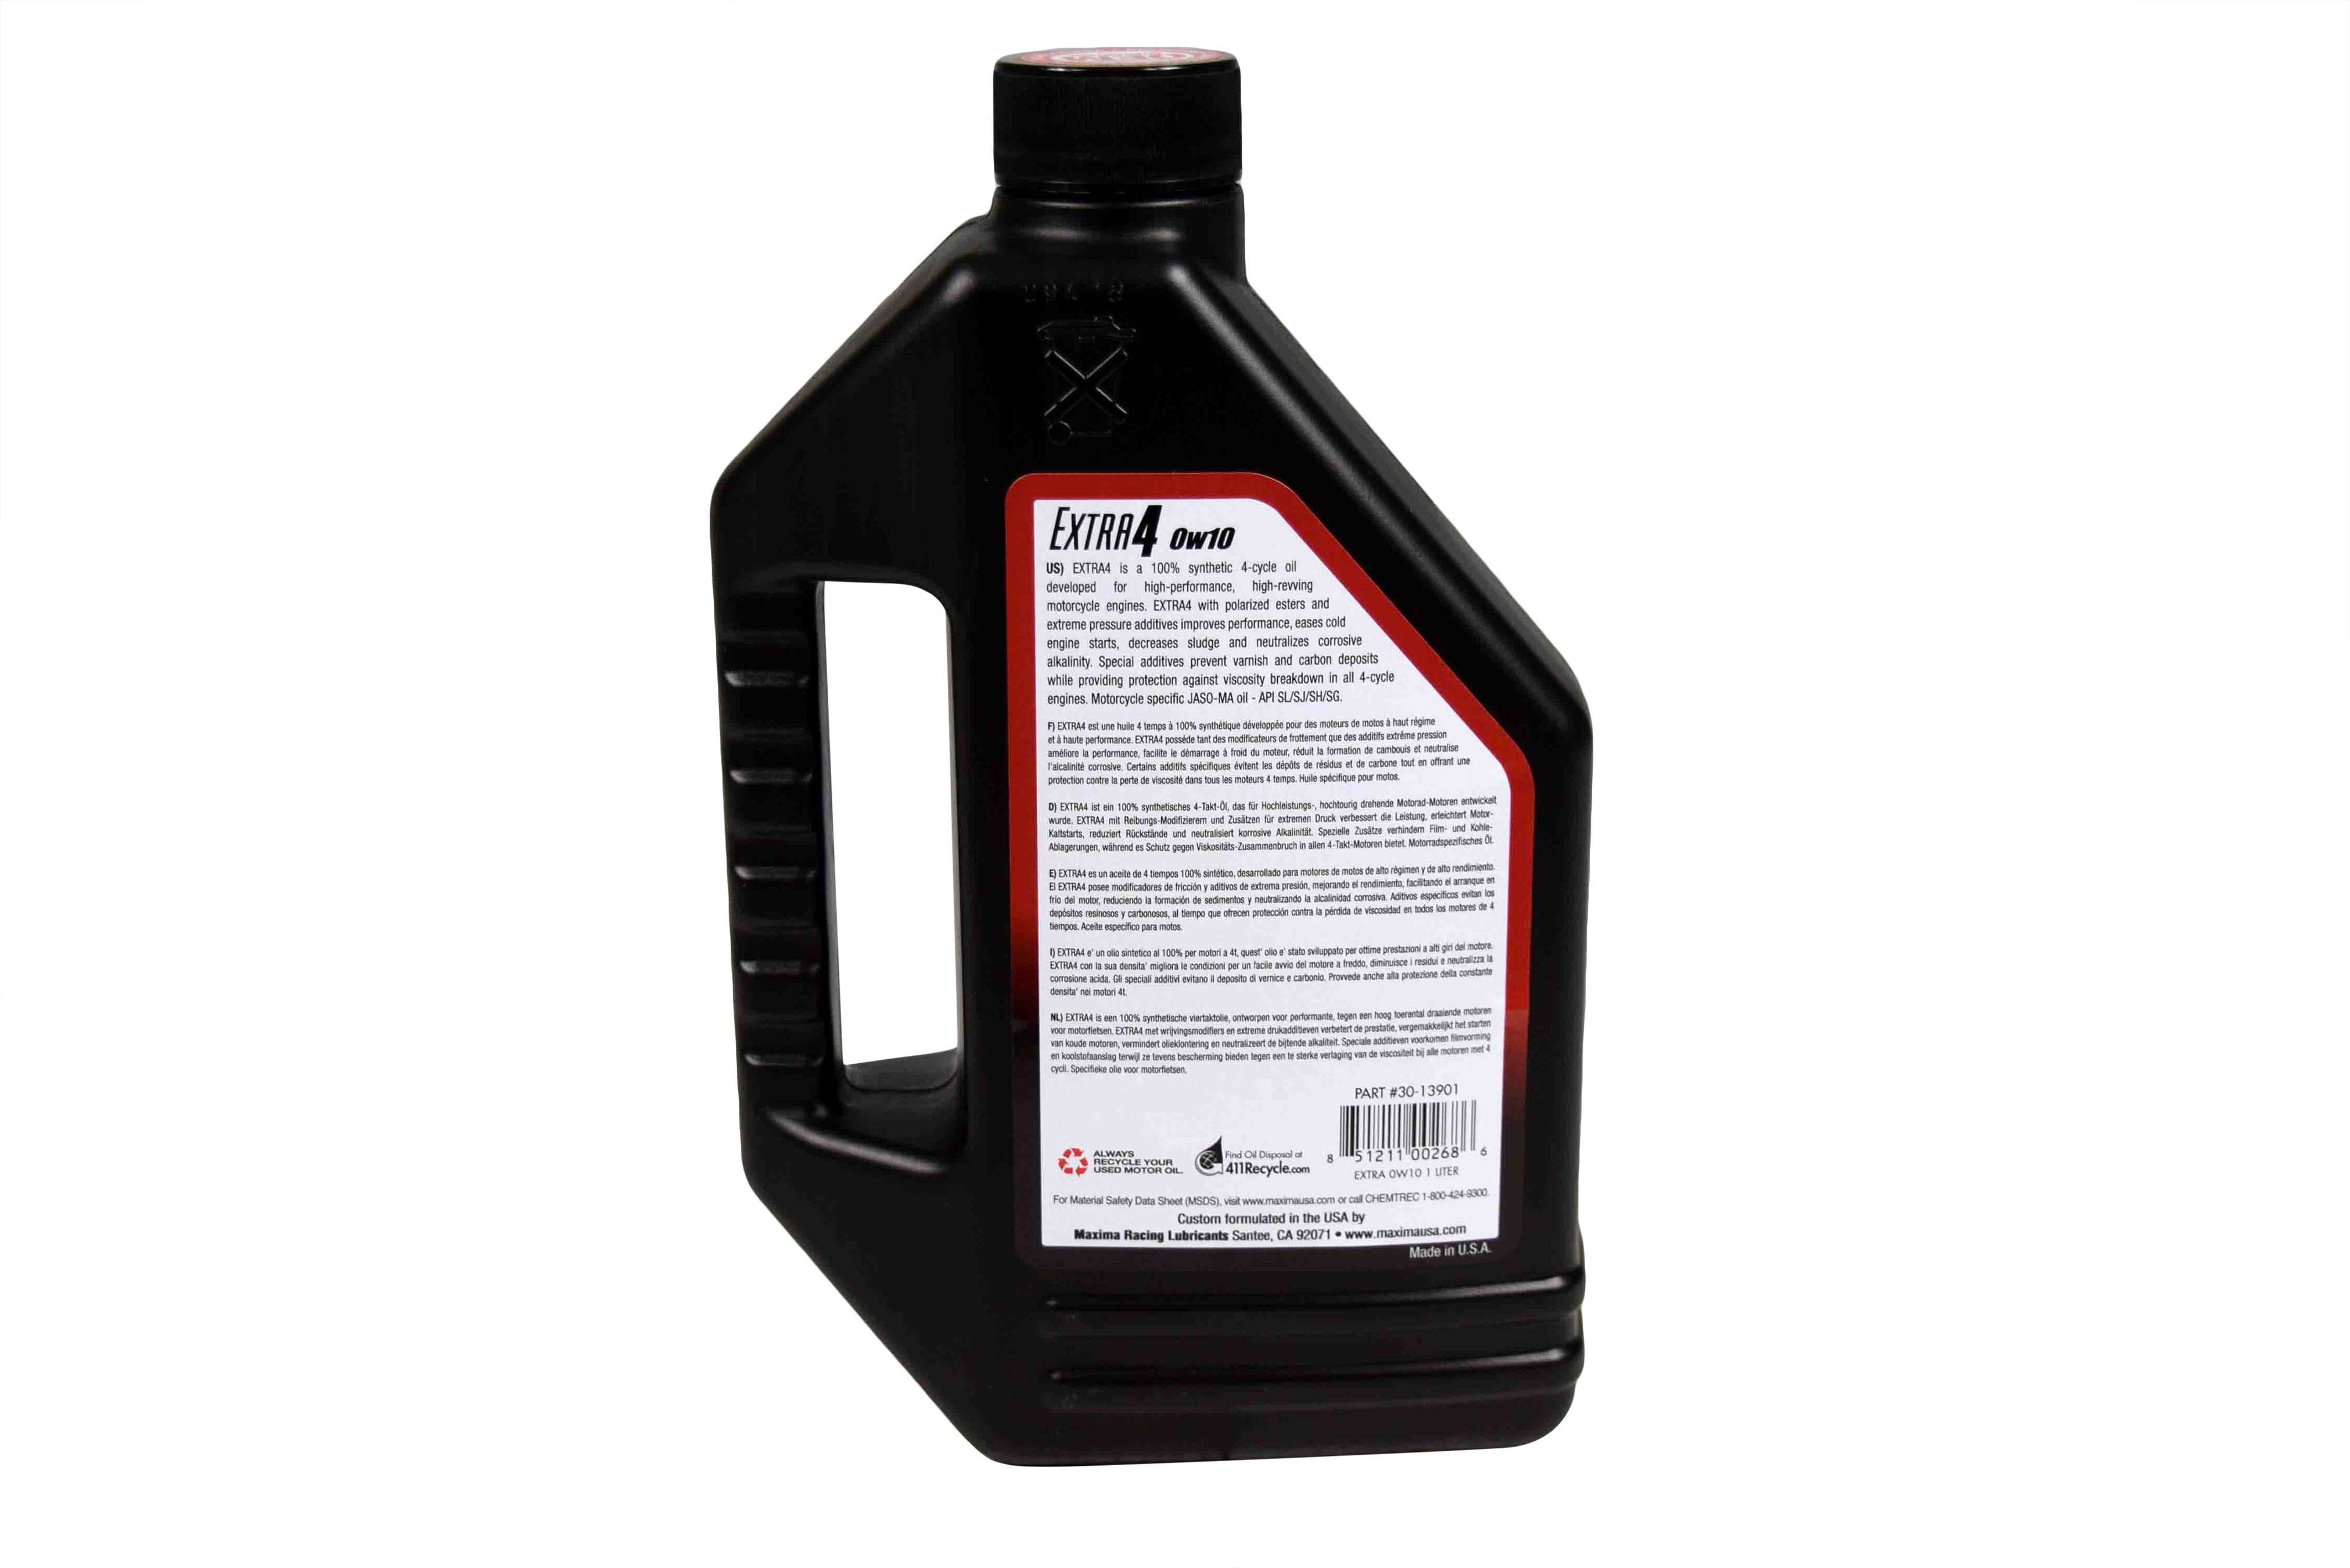 Maxima-30-13901-Extra4-0W-10-Synthetic-4T-Motorcycle-Engine-Oil-1-Liter-Bottle-image-3